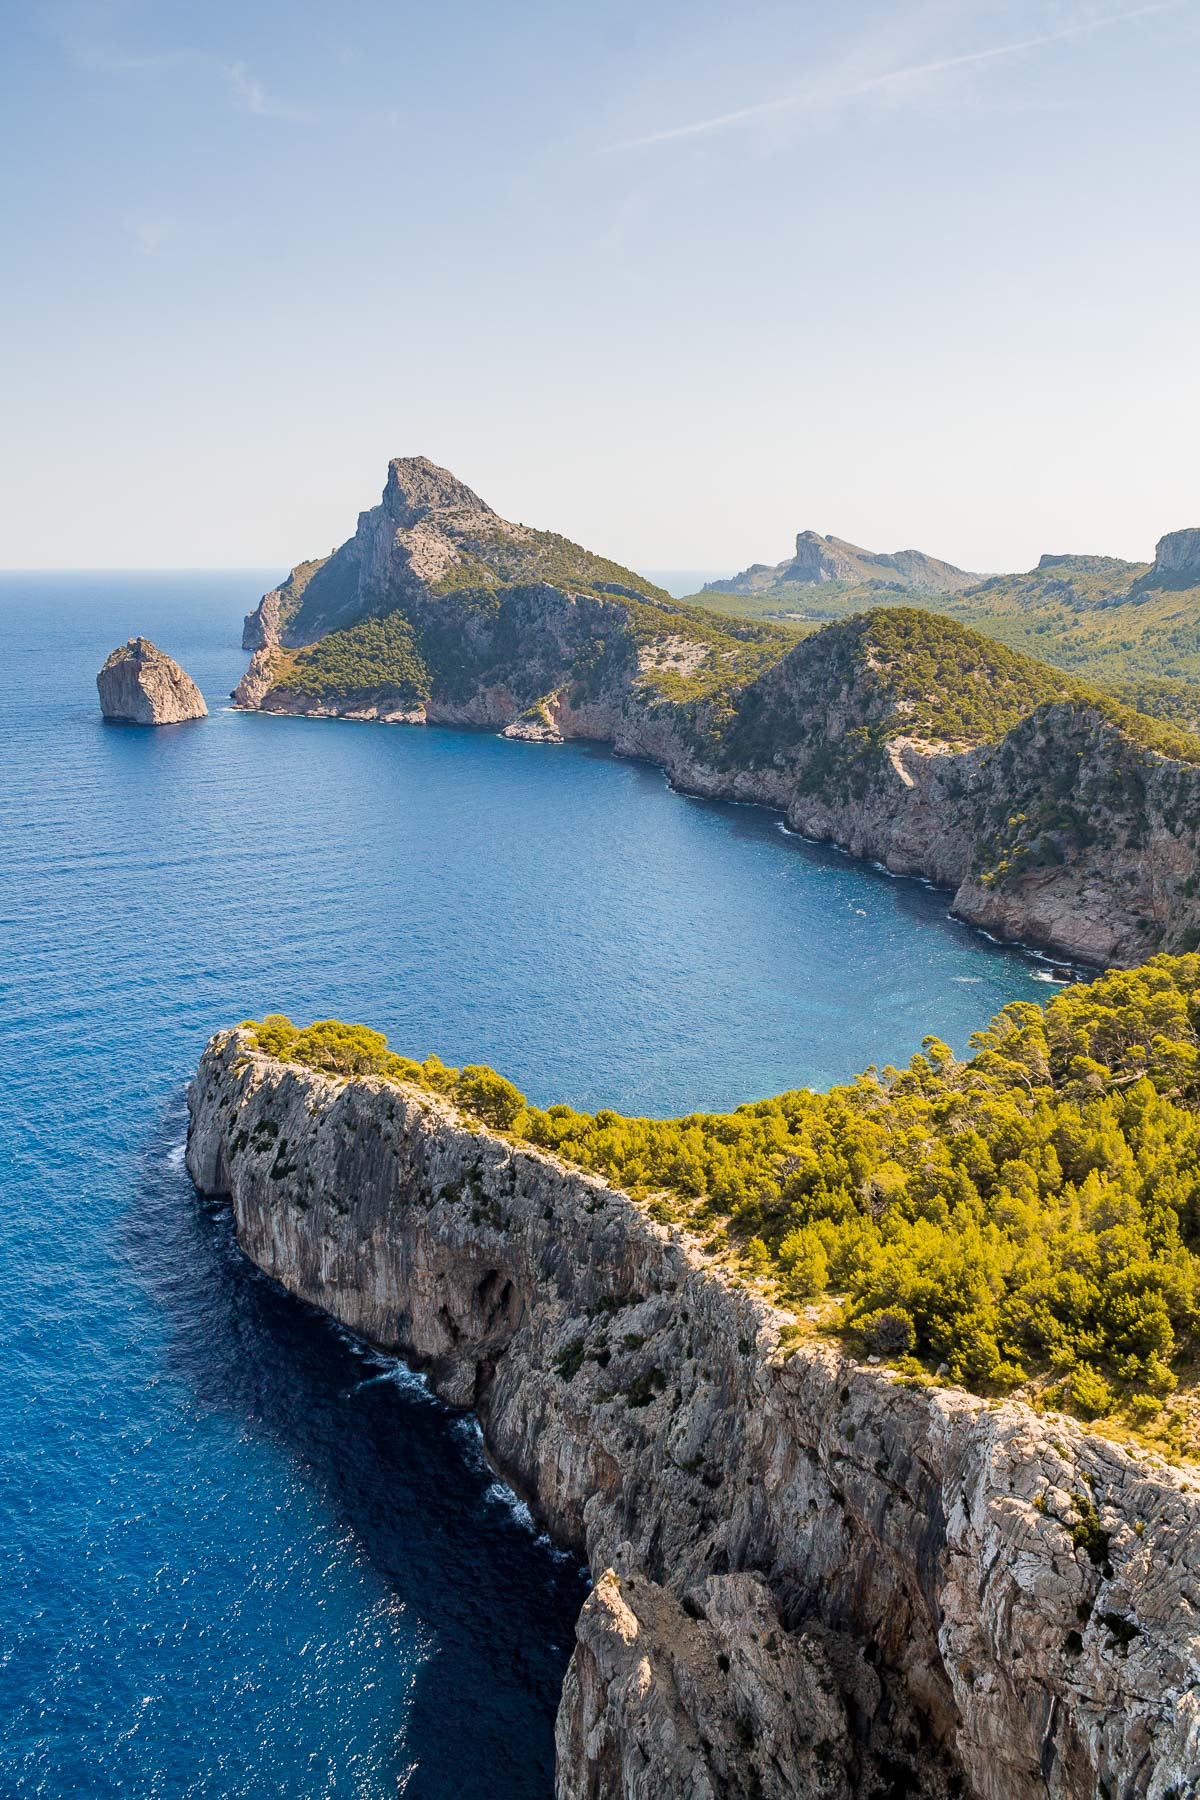 Mirador Es Colomer Viewpoint in Mallorca